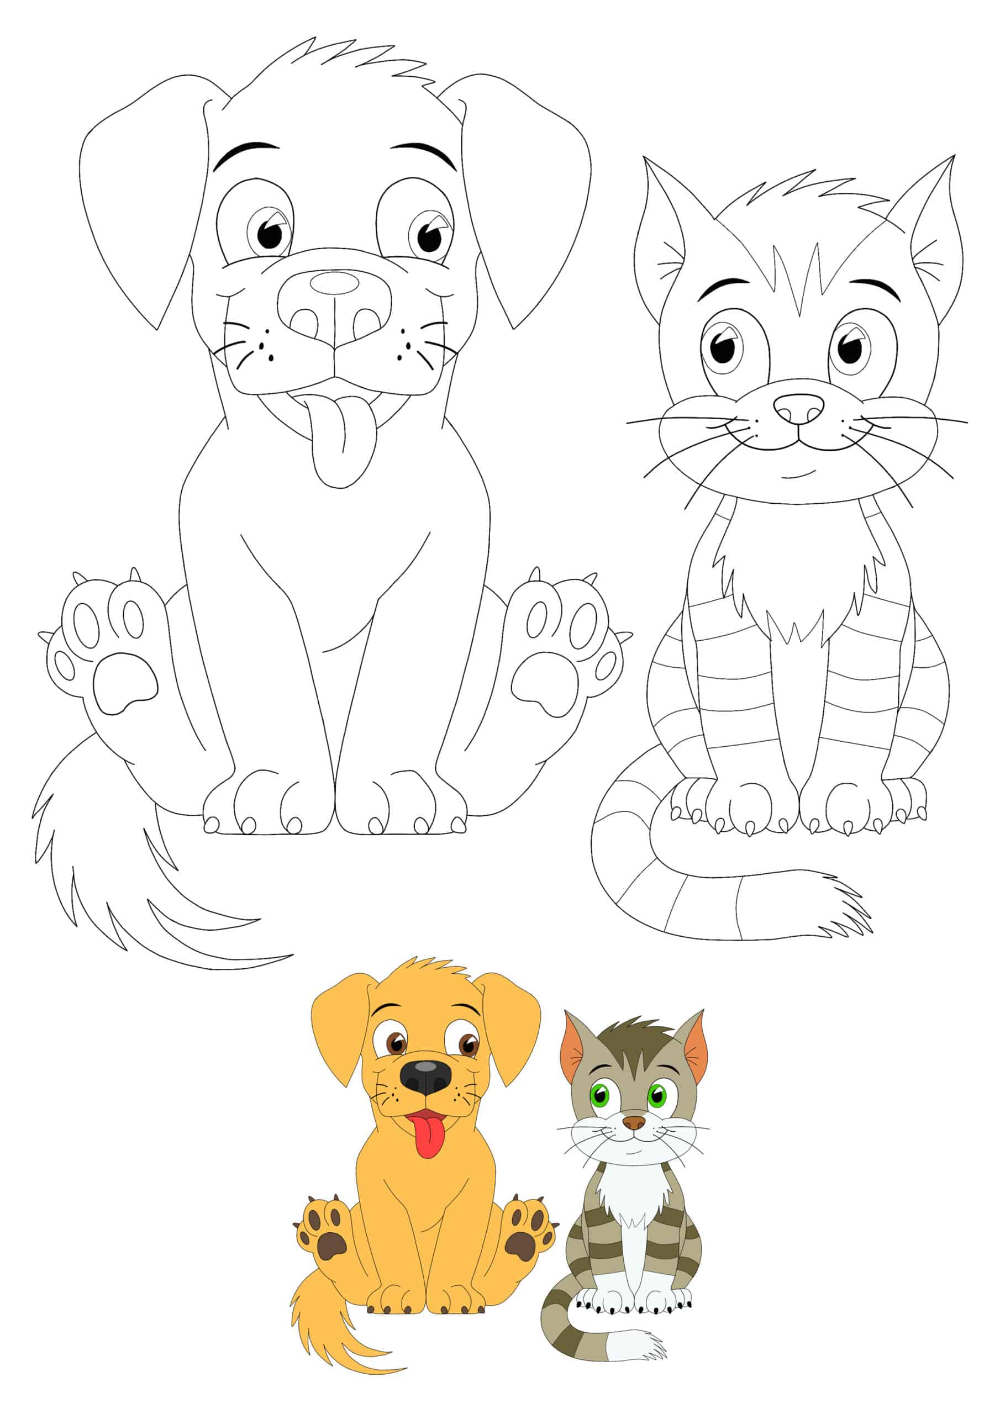 Cat And Dog Coloring Pages 2 Free Coloring Sheets 2020 Dog Coloring Page Cat Coloring Page Anime Cat [ 1414 x 1000 Pixel ]